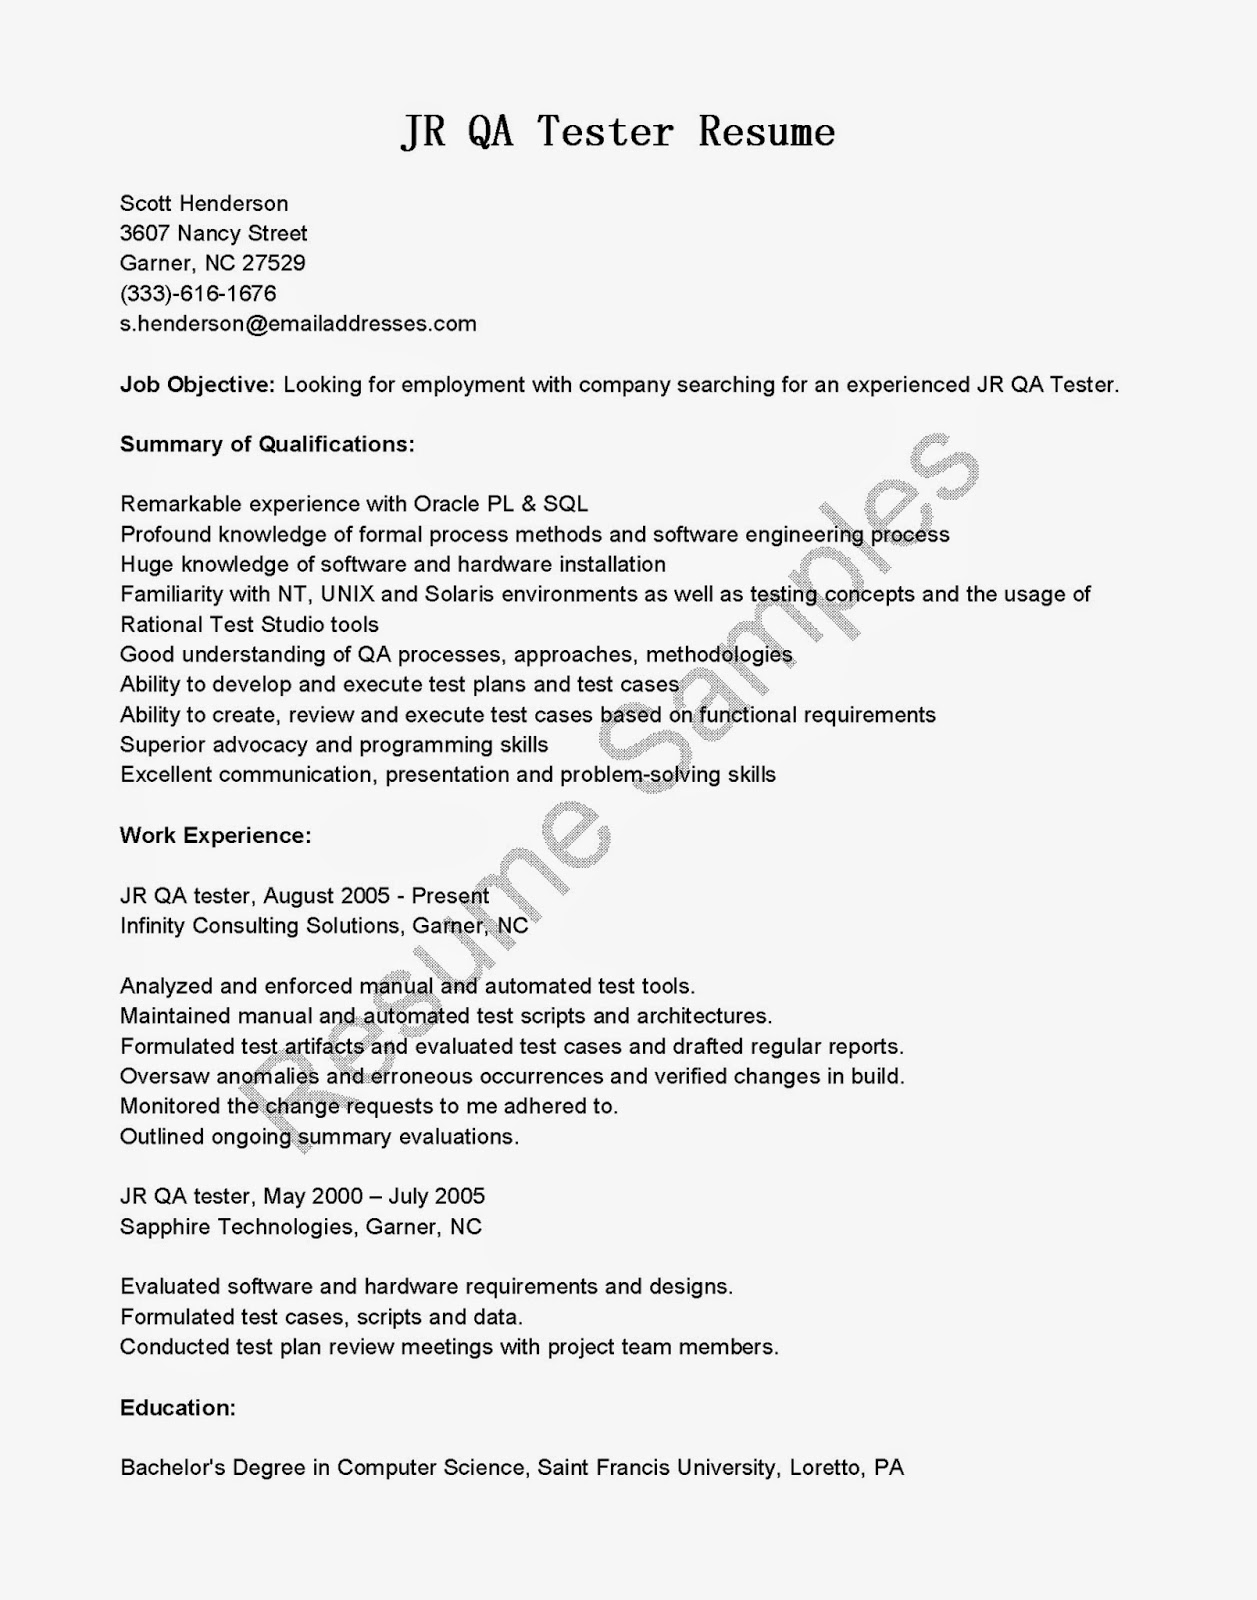 resume samples qa cover letter resume examples resume samples qa qa tester resumes indeed resume search resume samples jr qa tester resume sample